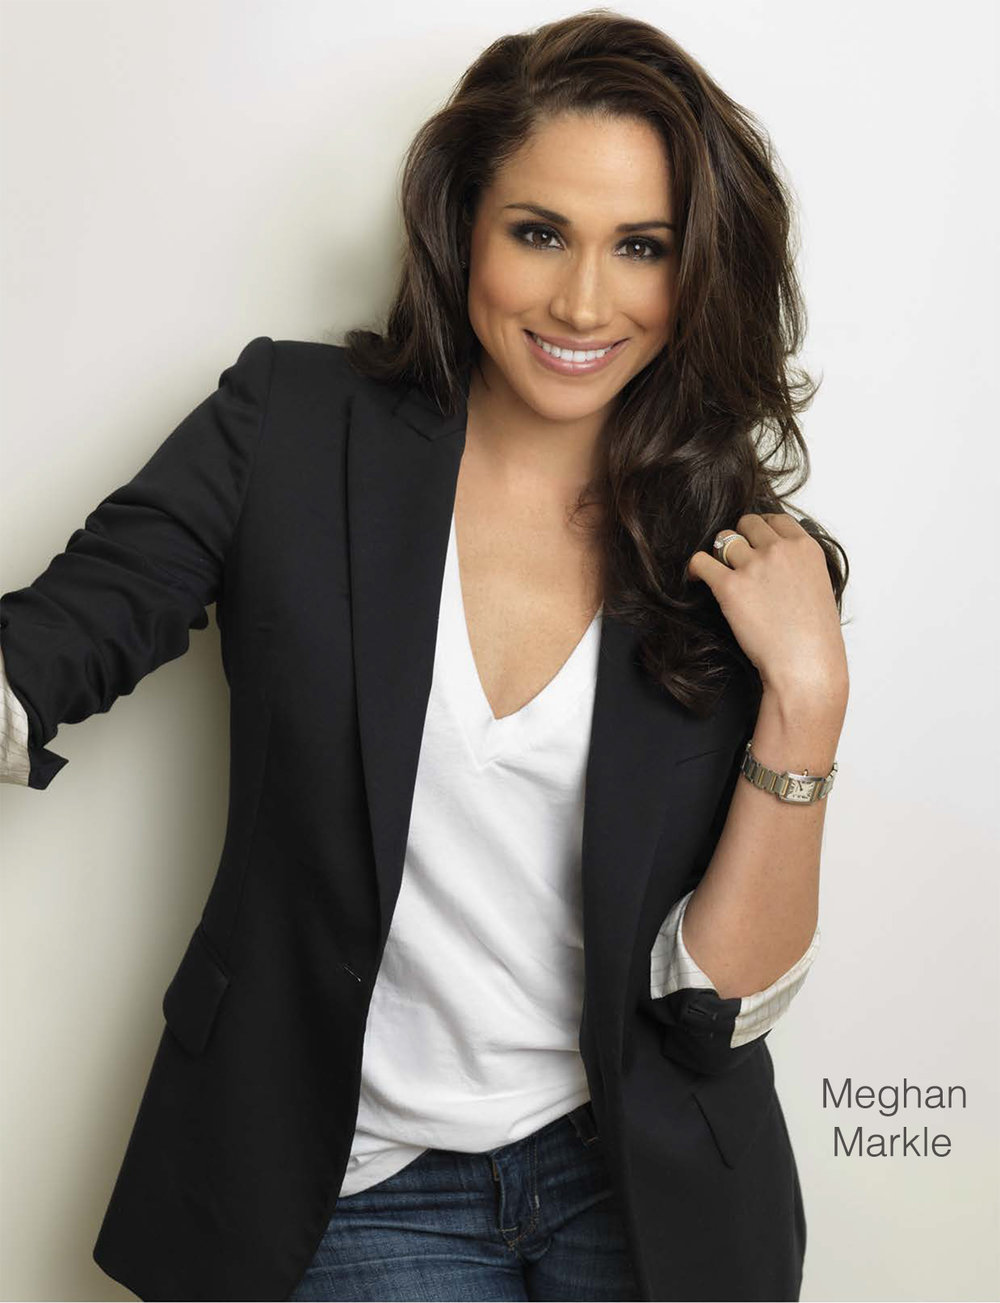 Meghan Markle December 2012.jpg